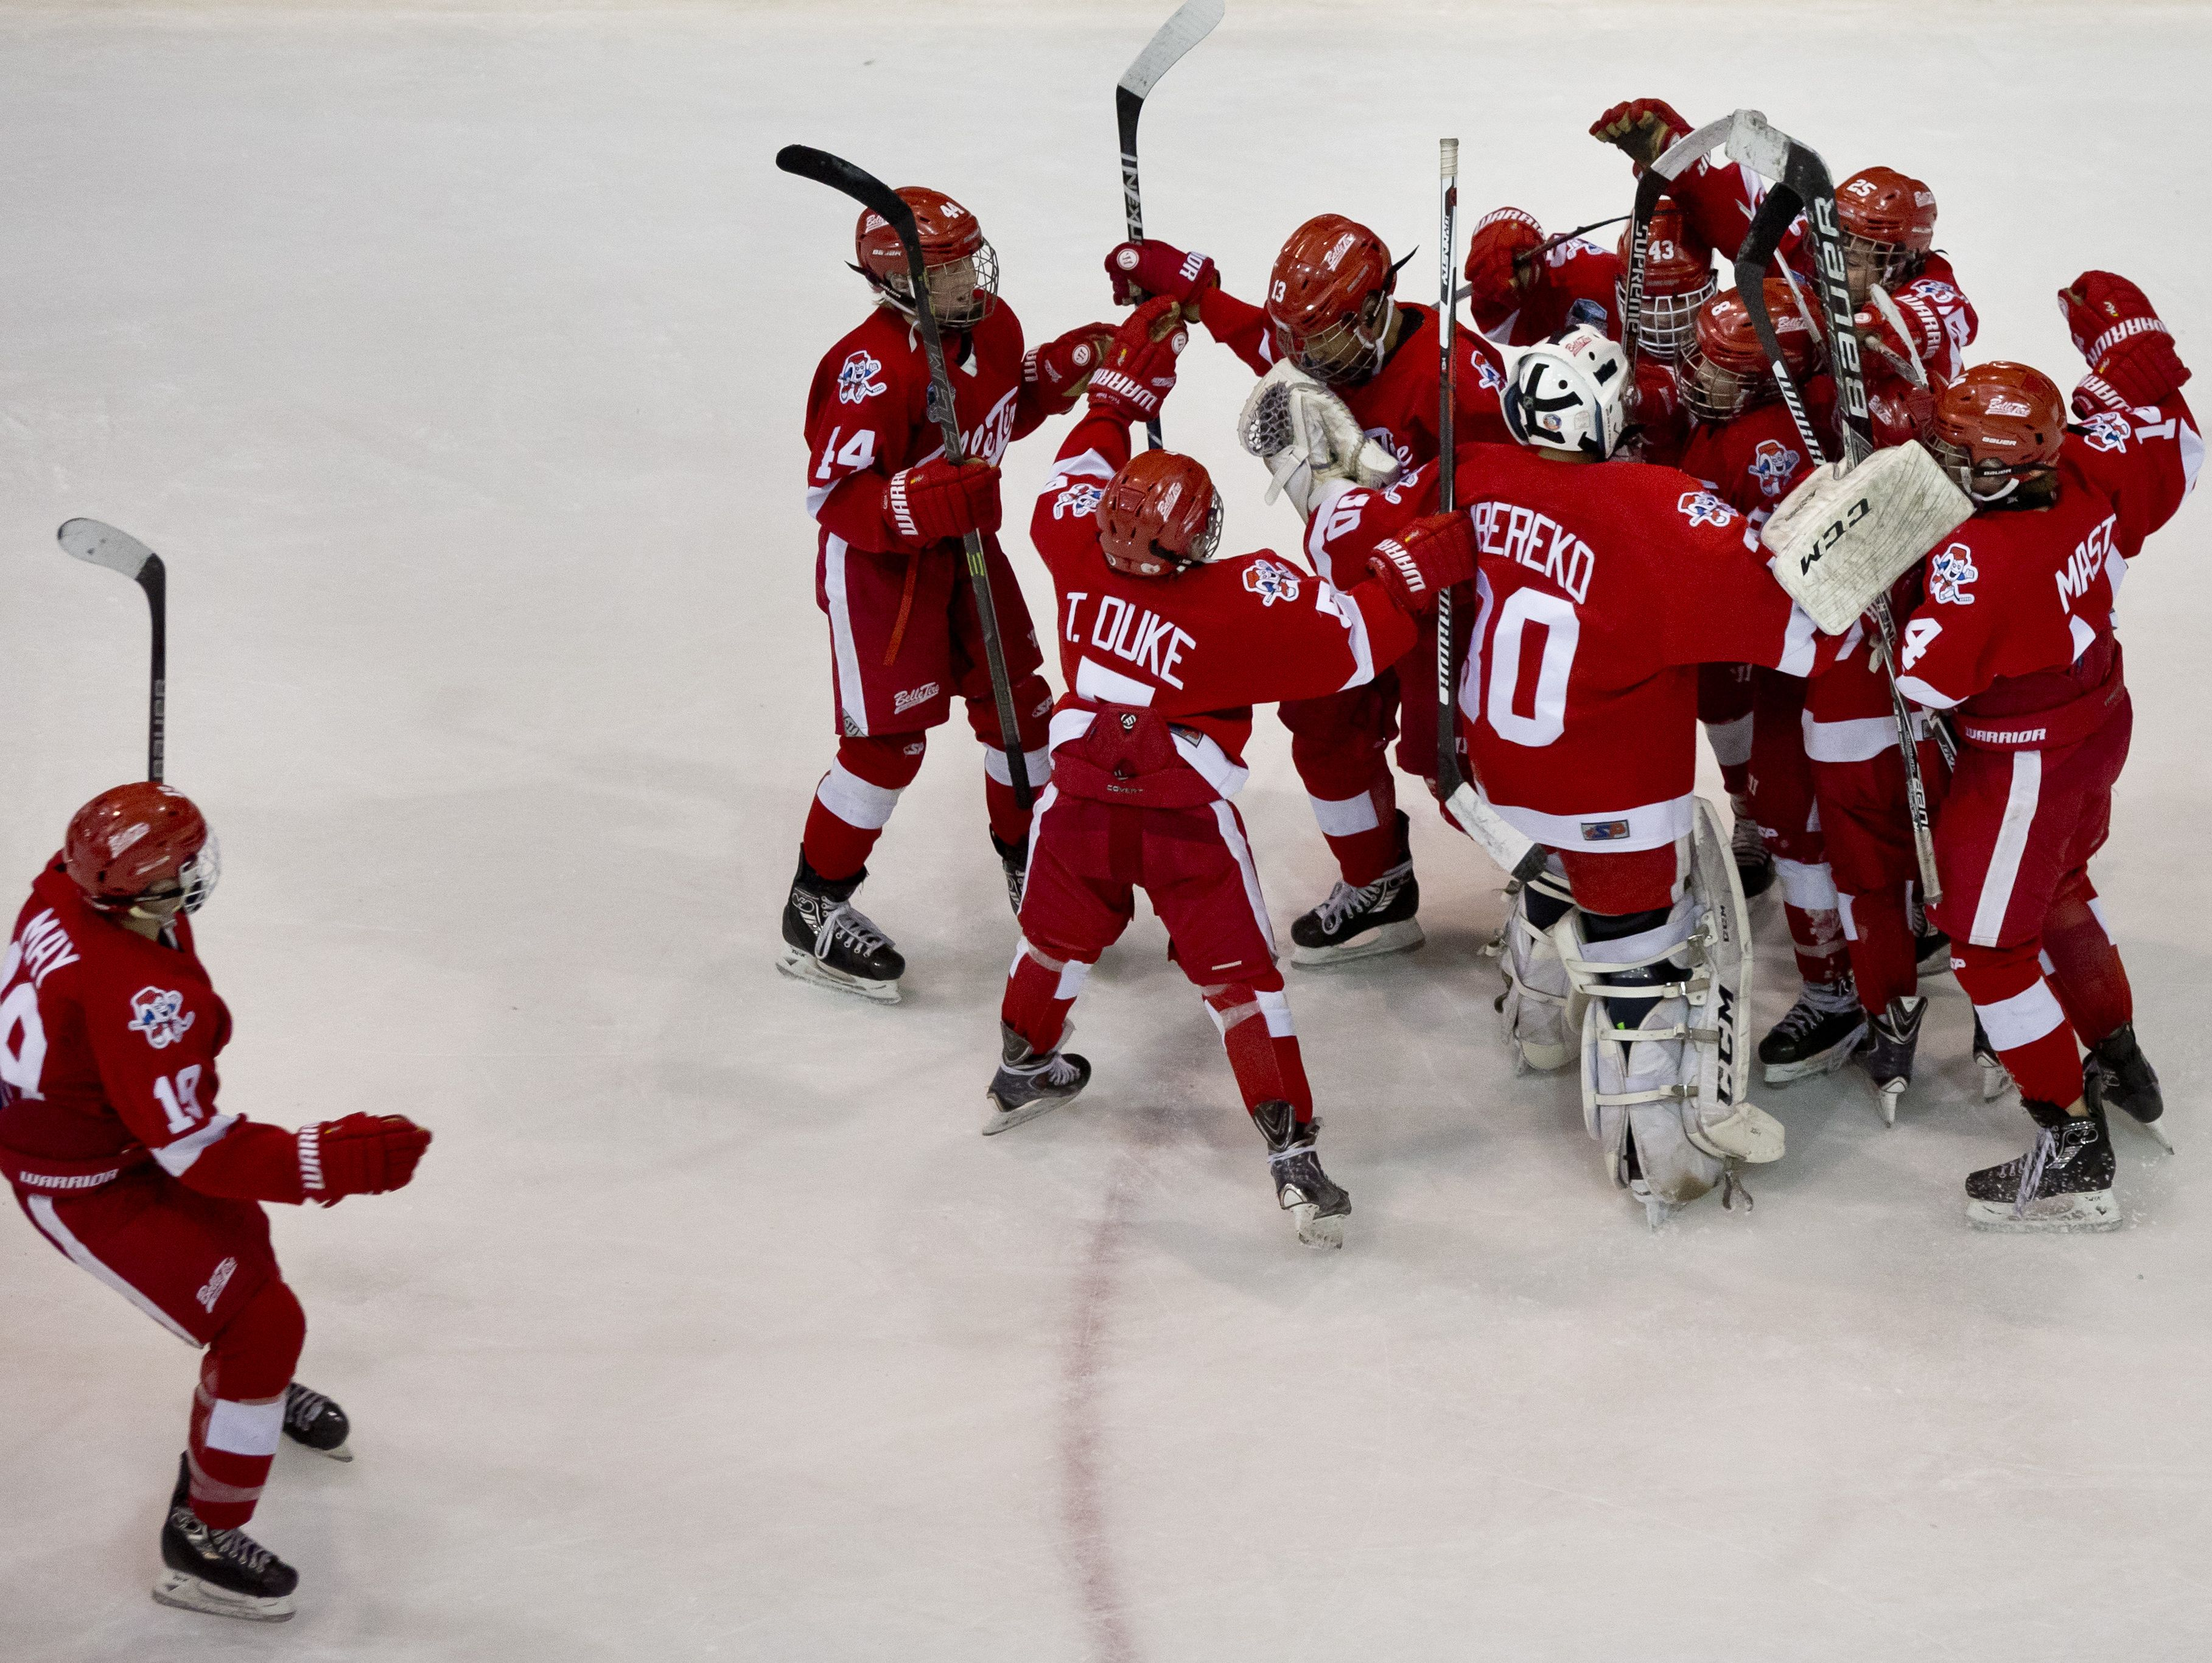 Detroit Belle Tire players celebrate scoring a goal with less than a second on the clock during a Silver Stick PeeWee AAA hockey game Friday, Jan. 8, 2016 at McMorran Arena in Port Huron.